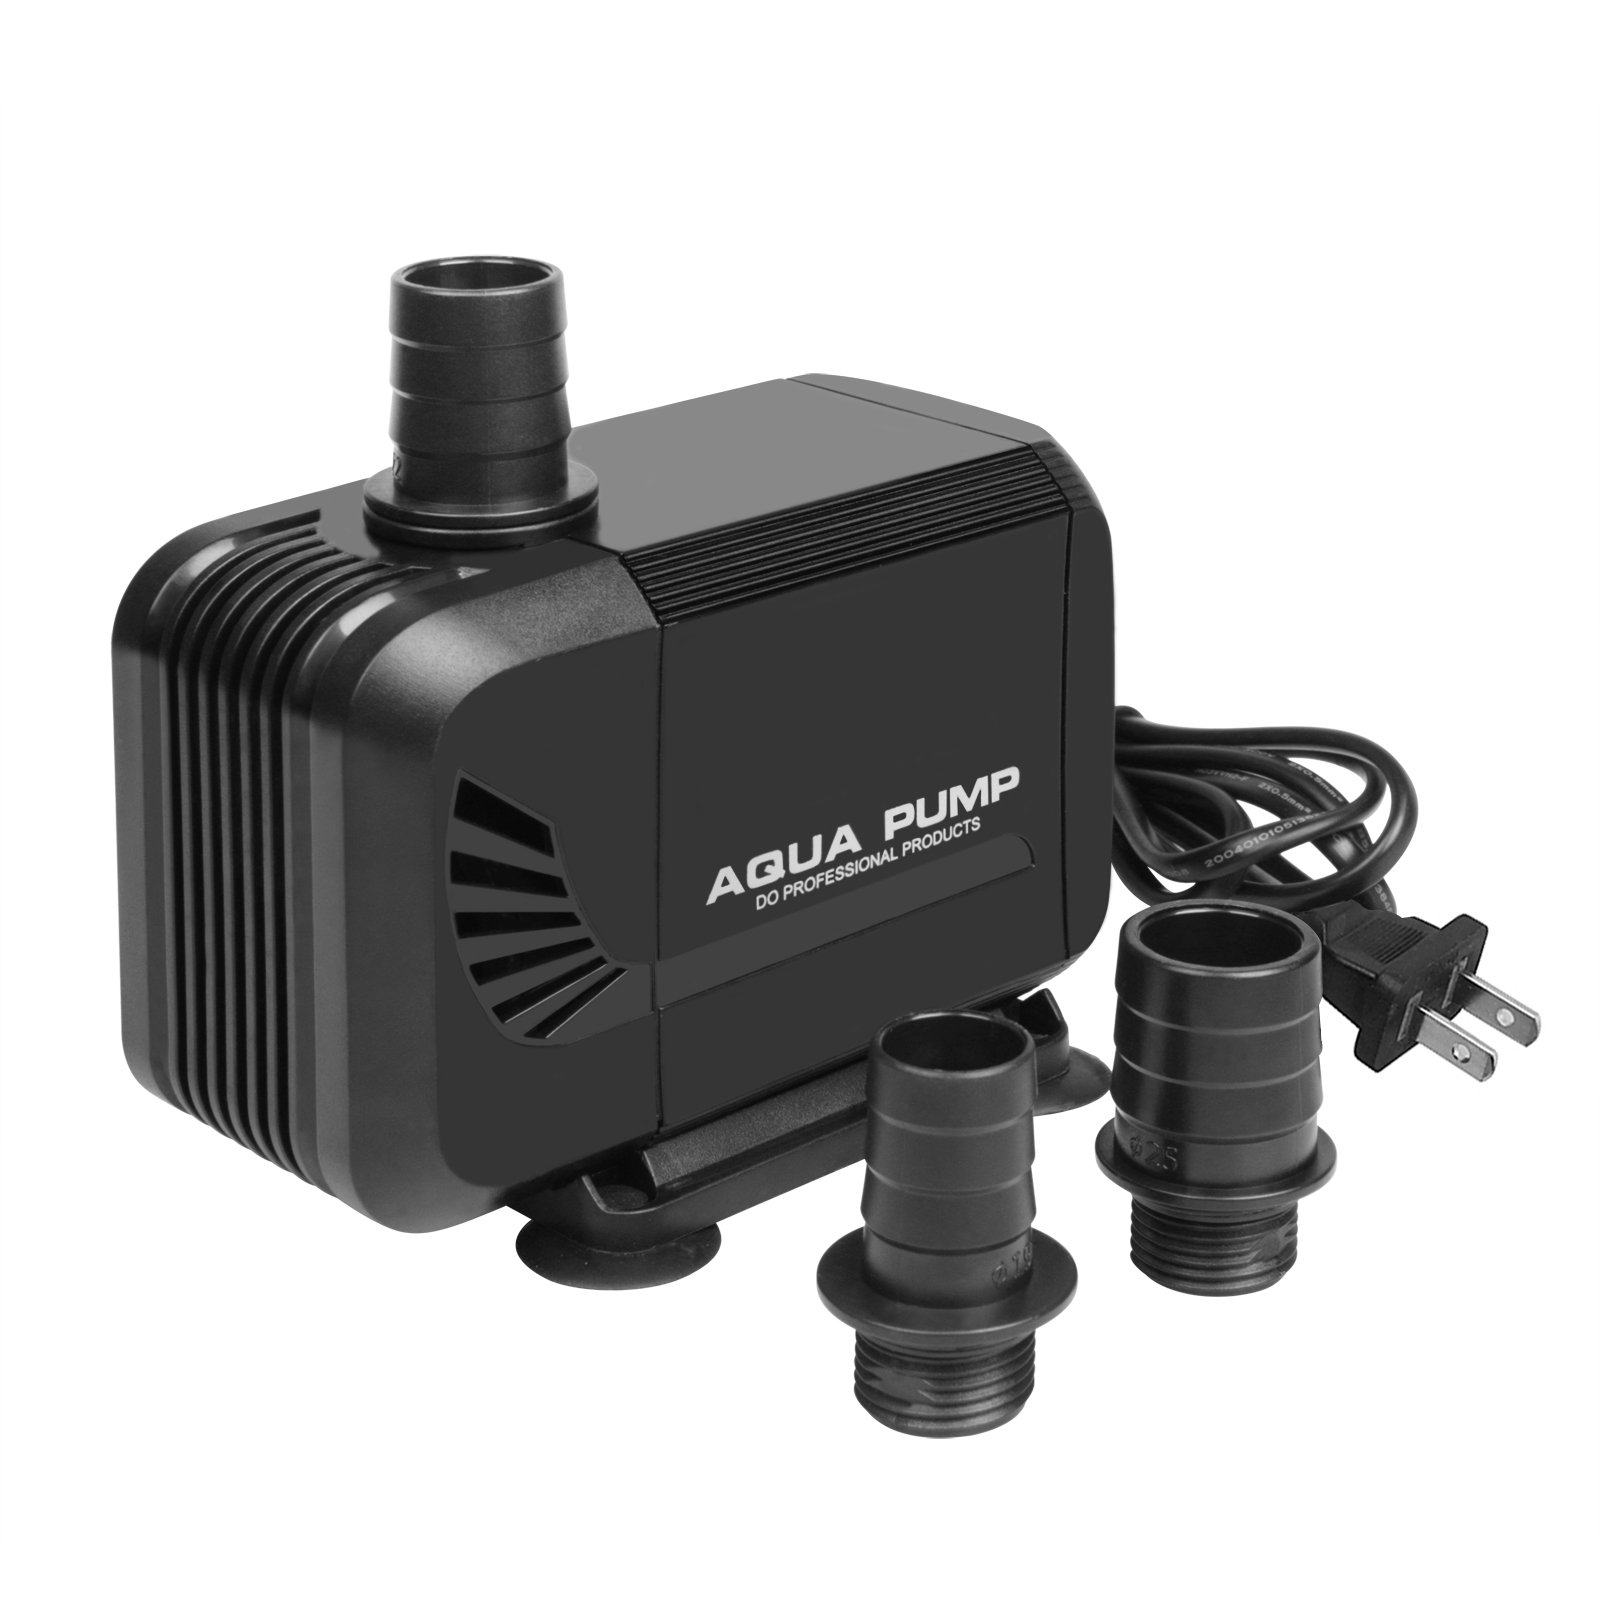 35W Submersible Water Pump 2500L/H 660GPH 8.2ft High Lift, Water Fountain with 4.5ft Power Cord, 3 Nozzles for Aquarium, Fish Tank, Pond, Water Scenario Decoration